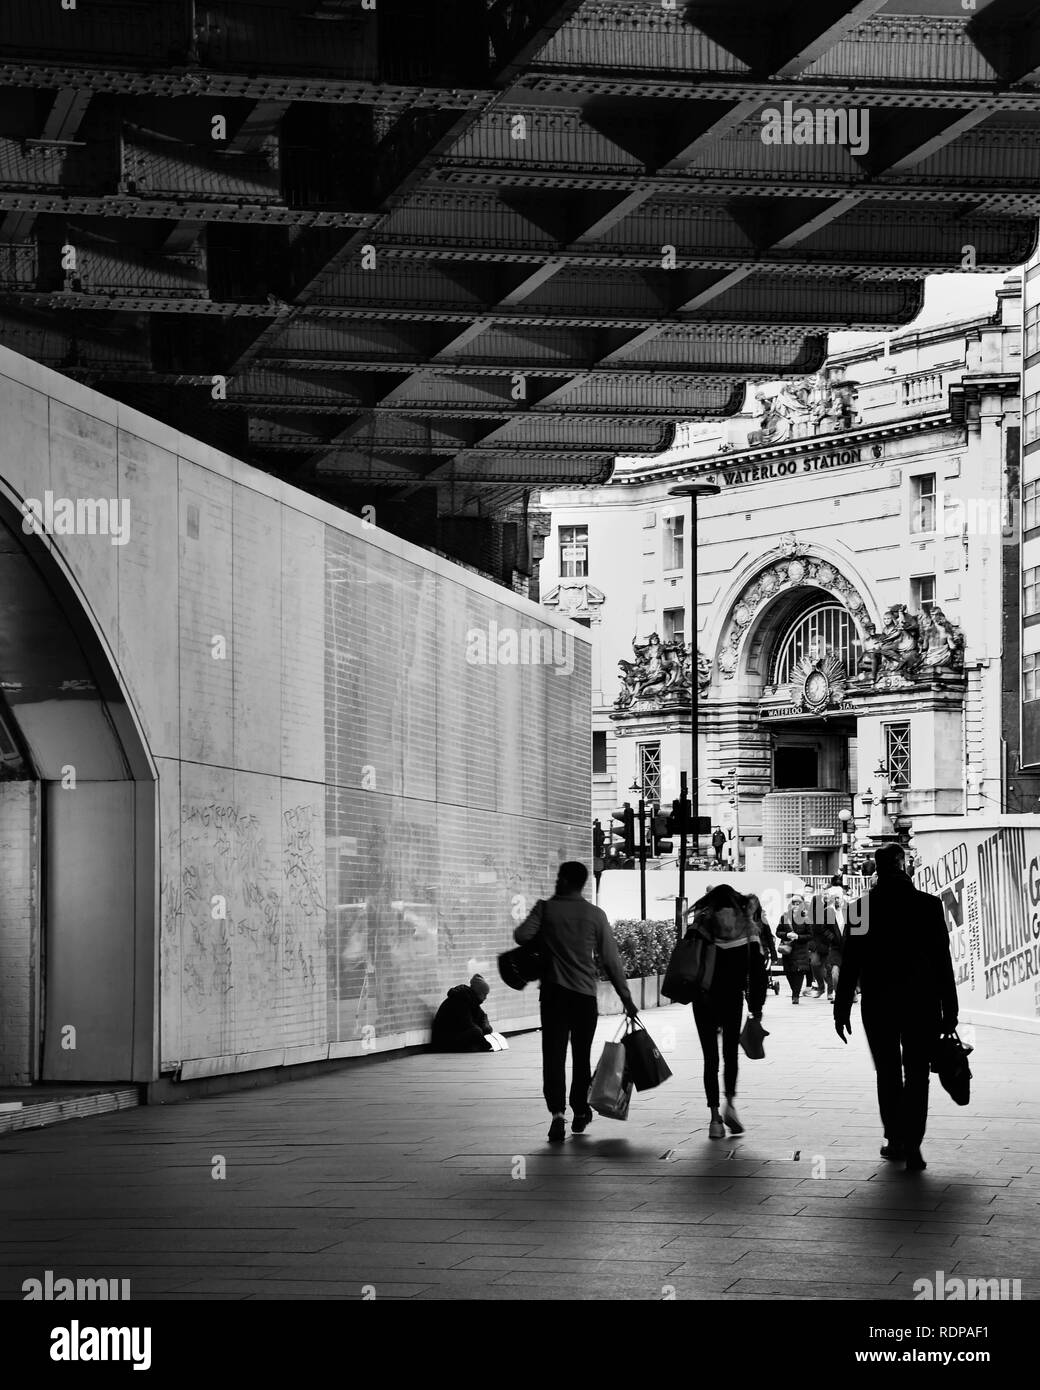 Commuters heading into Waterloo station in London, UK - Stock Image